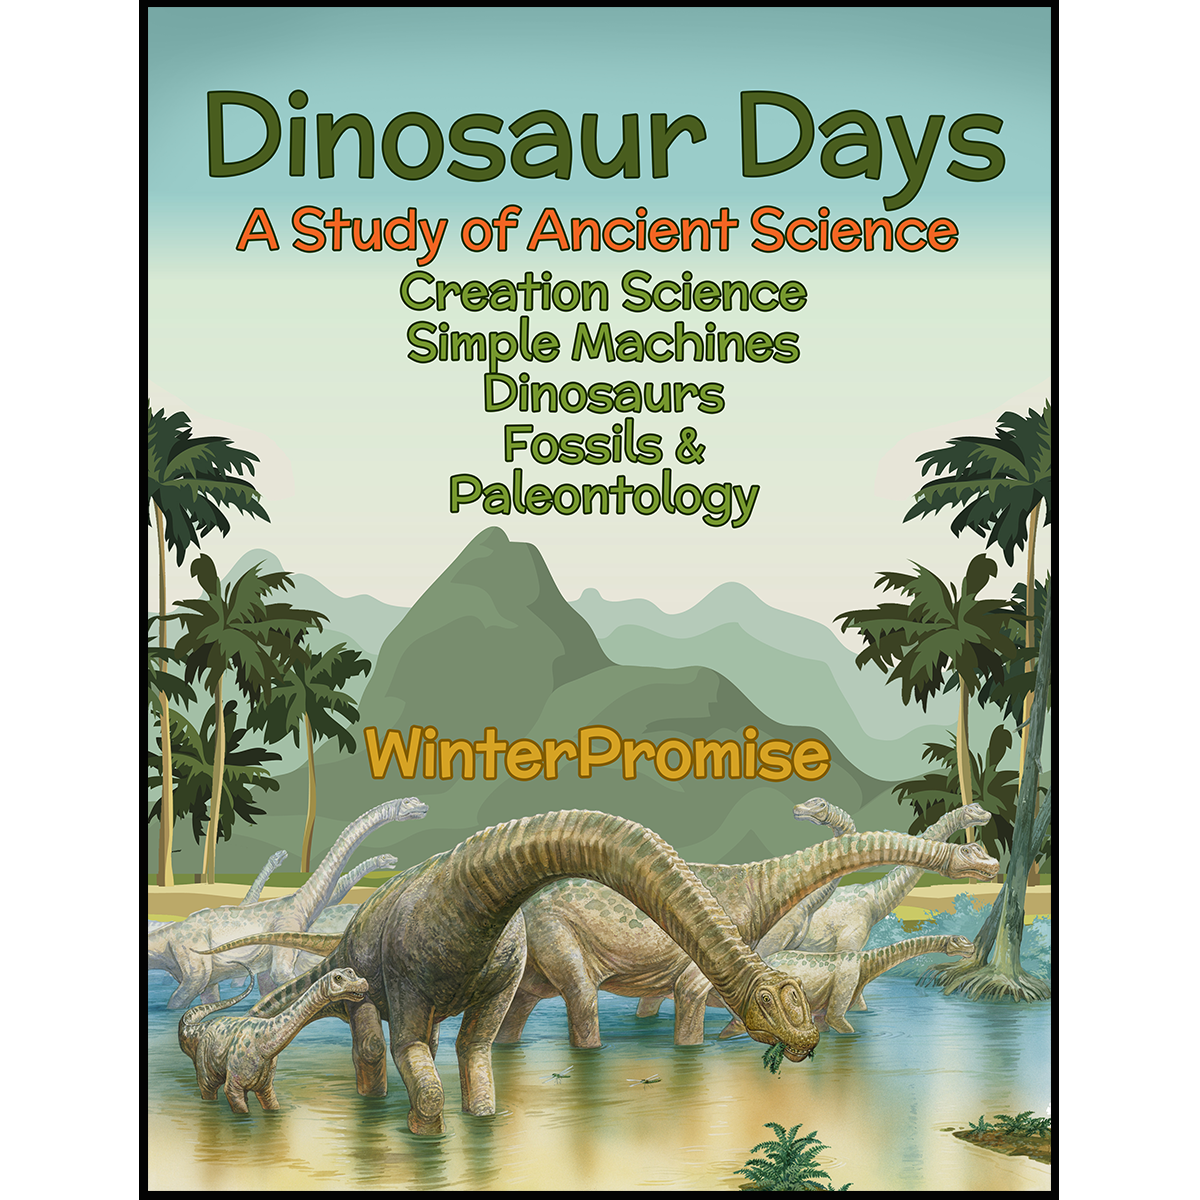 Dinosaur Days Review